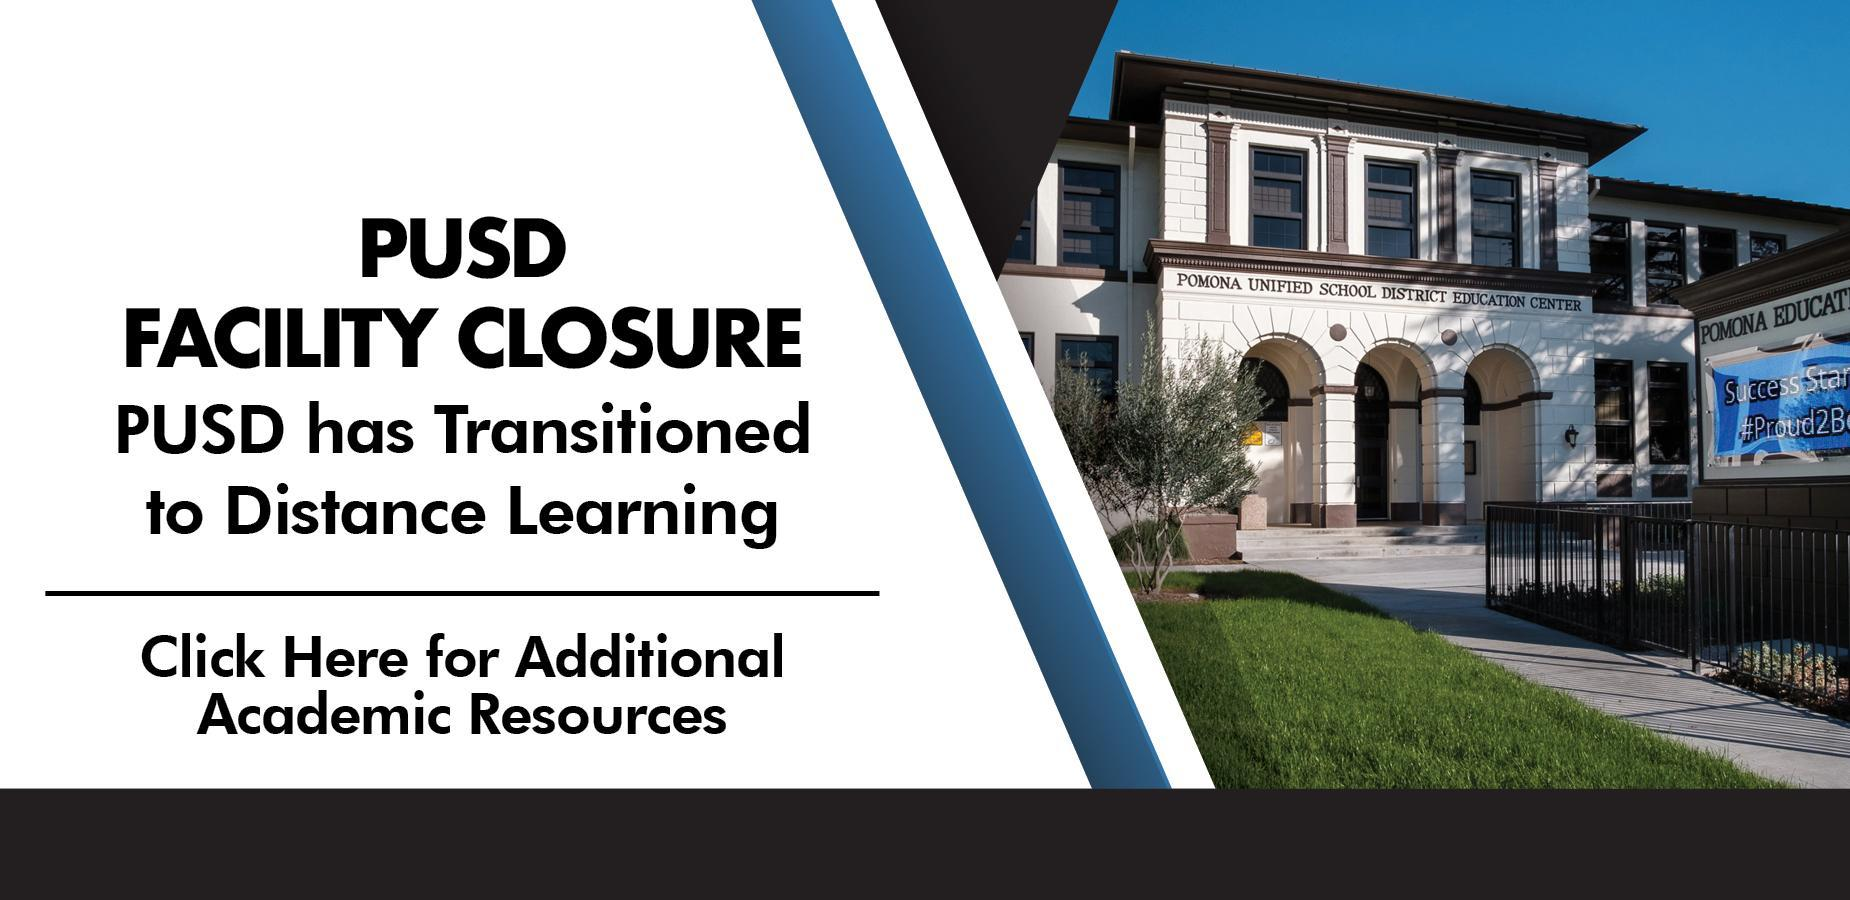 https://sites.google.com/apps.pusd.org/pusd-closure-online-resources/home?fbclid=IwAR3Tz5kq0zX8-kuxZA2PYKYcY1lcVW0_feGt5f-B7Lit5pGBF14ICt3a4wA